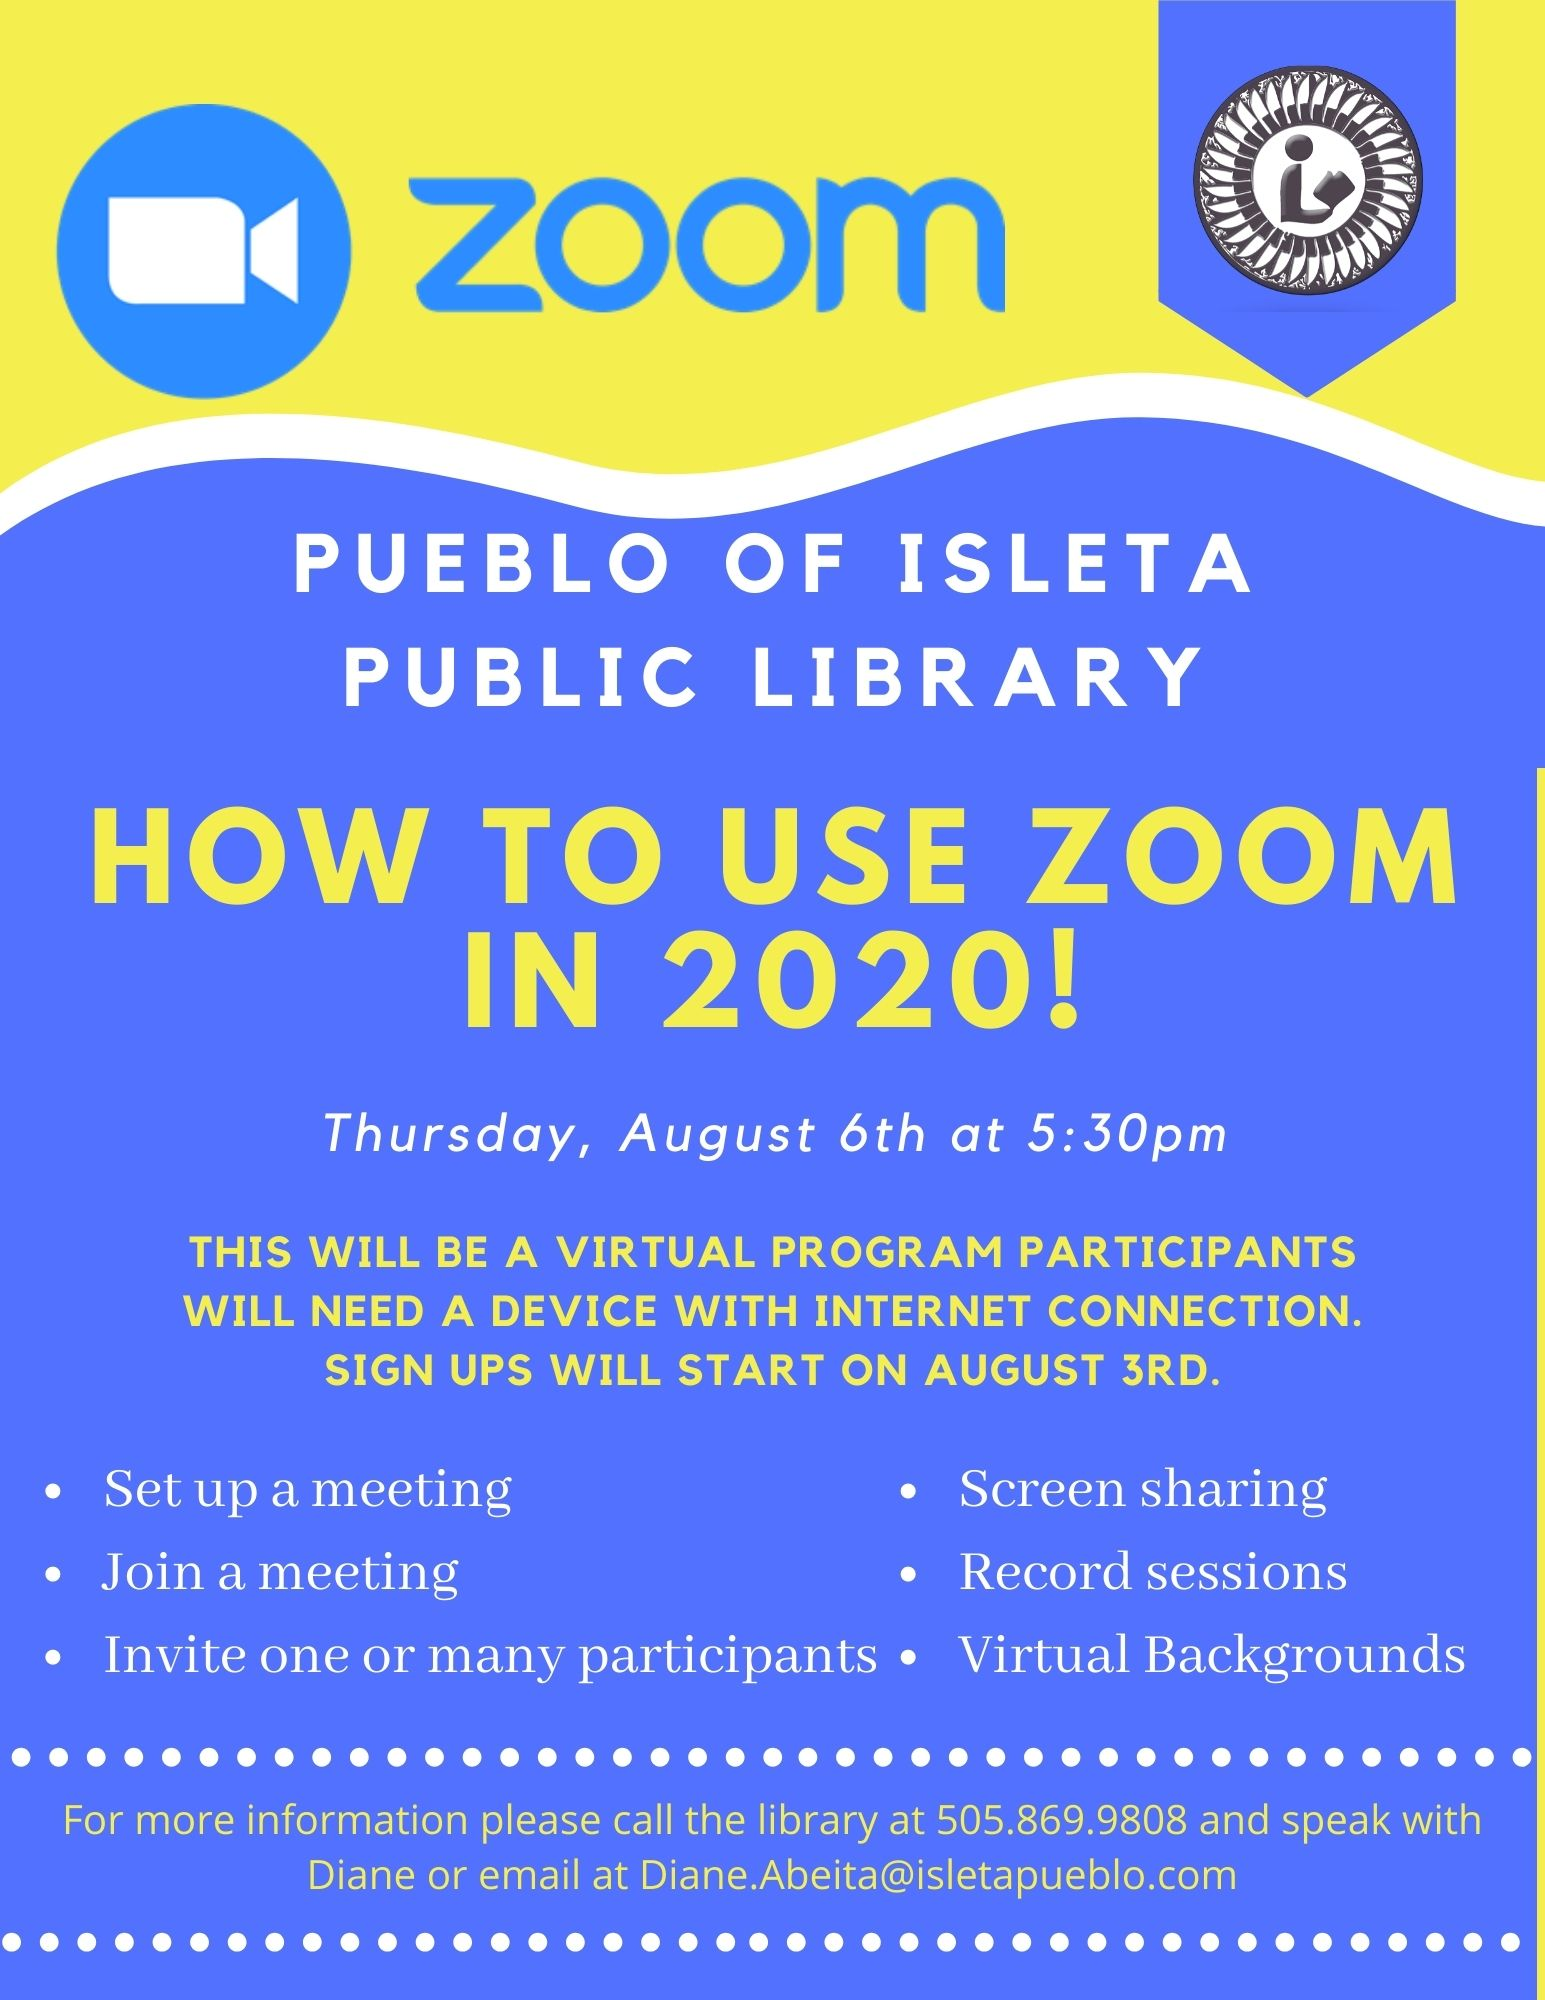 How to use Zoom in 2020